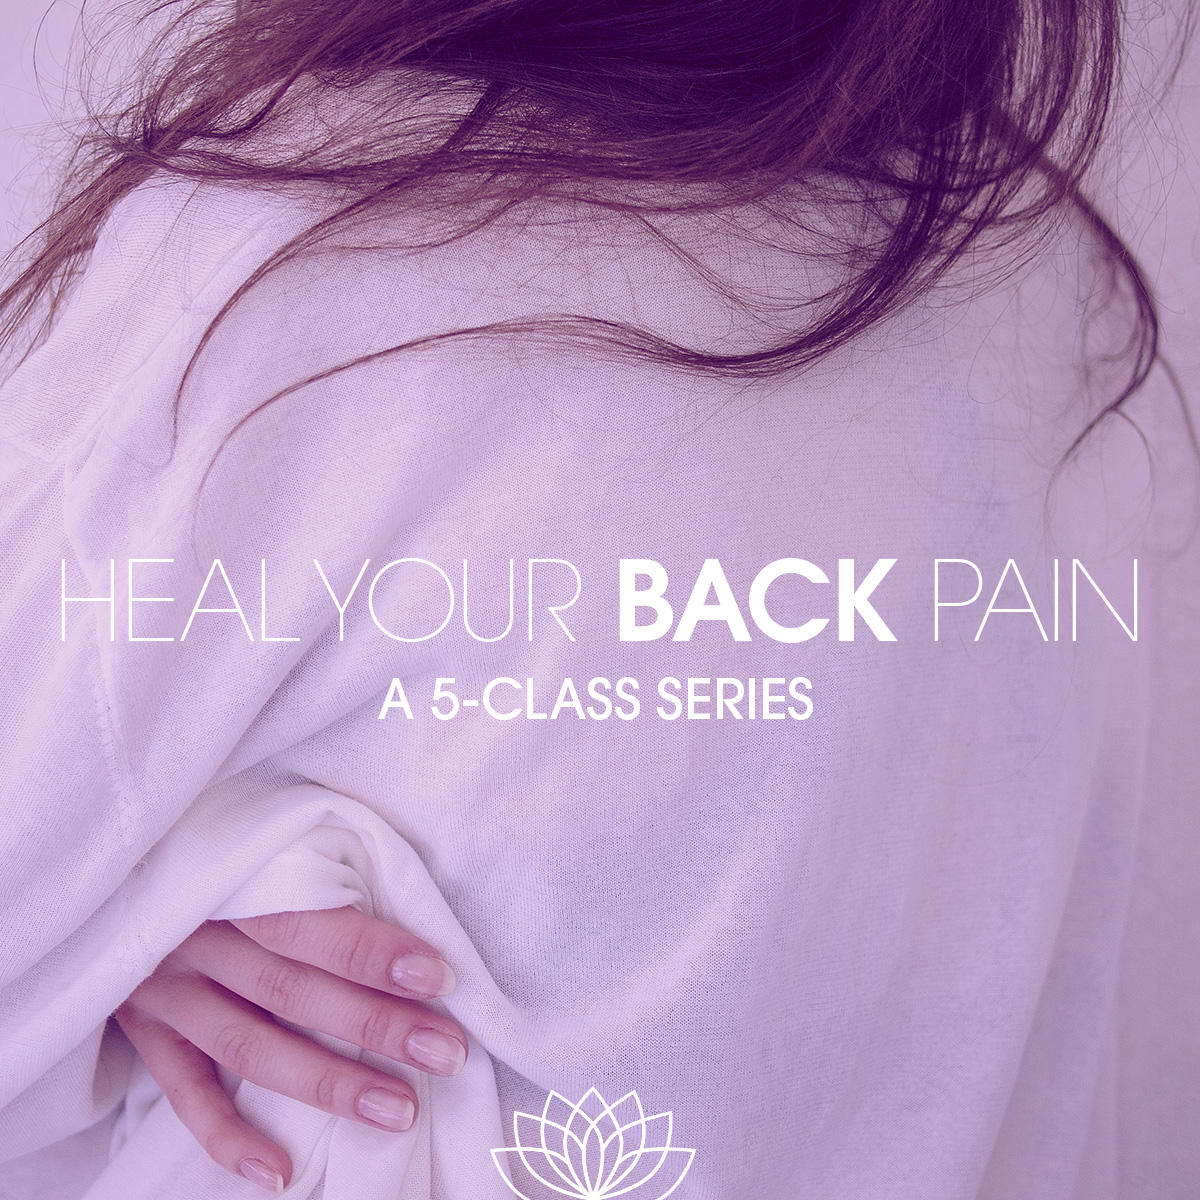 Heal Your Back Pain Program